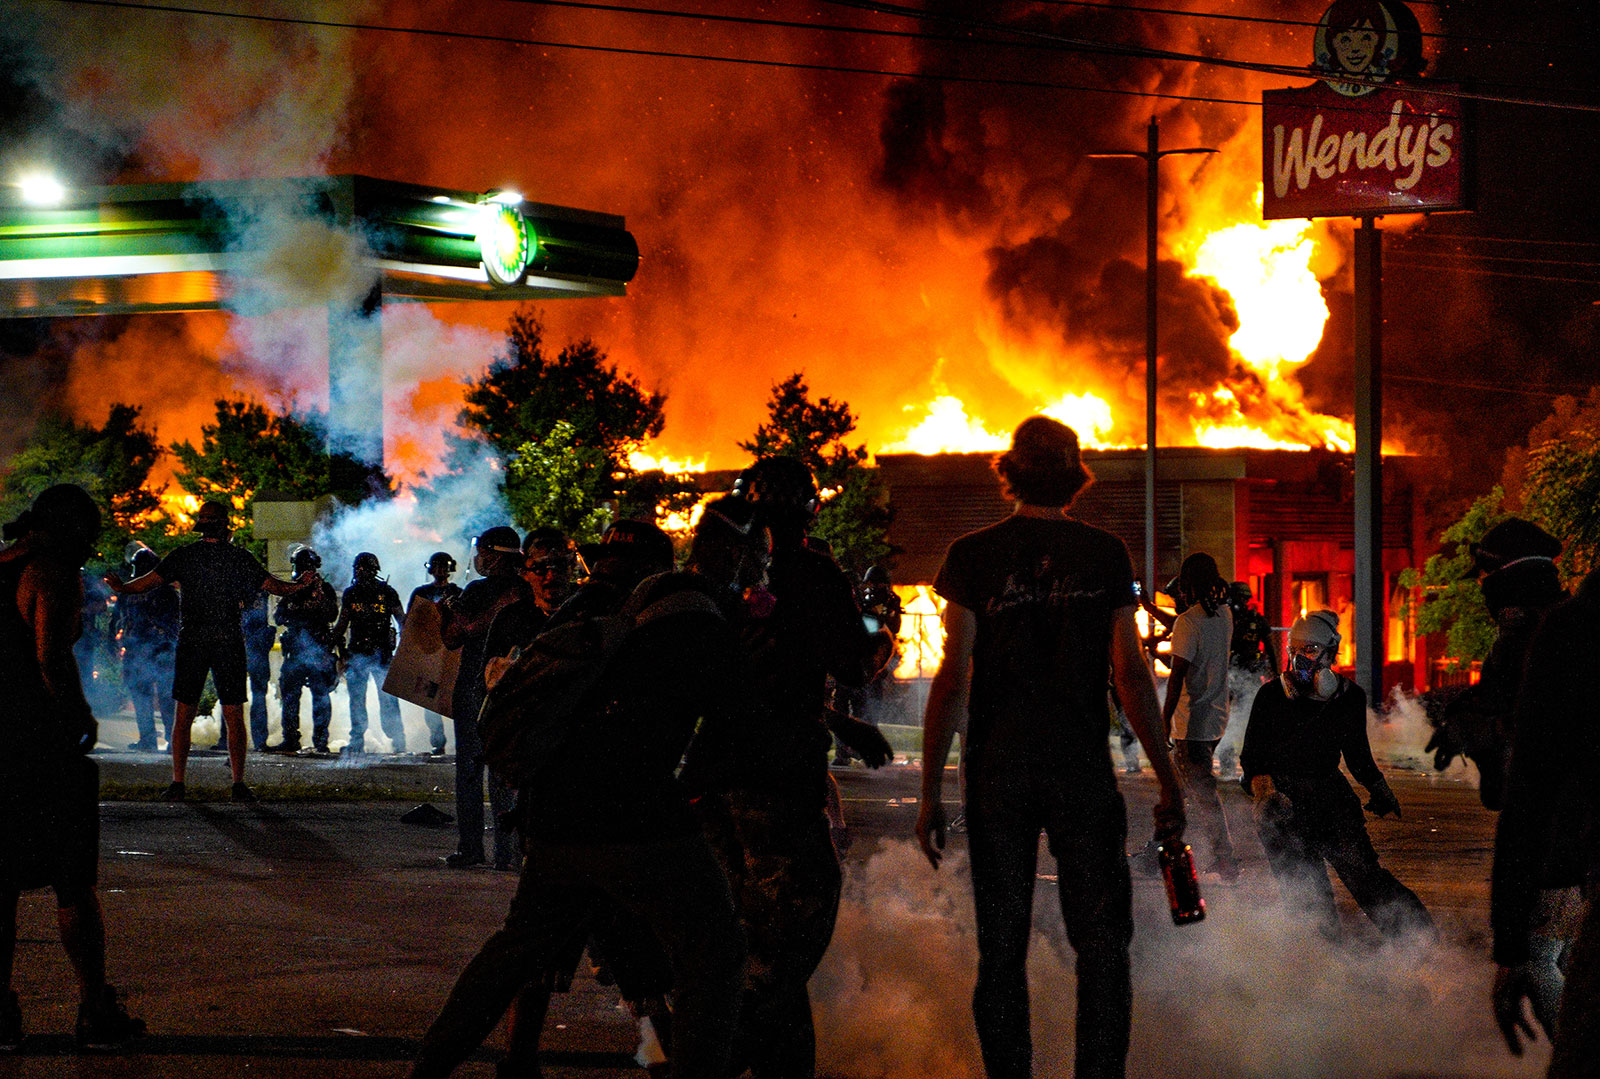 Demonstrators watch a Wendy's restaurant burn in Atlanta during a protest over the shooting of Rayshard Brooks.